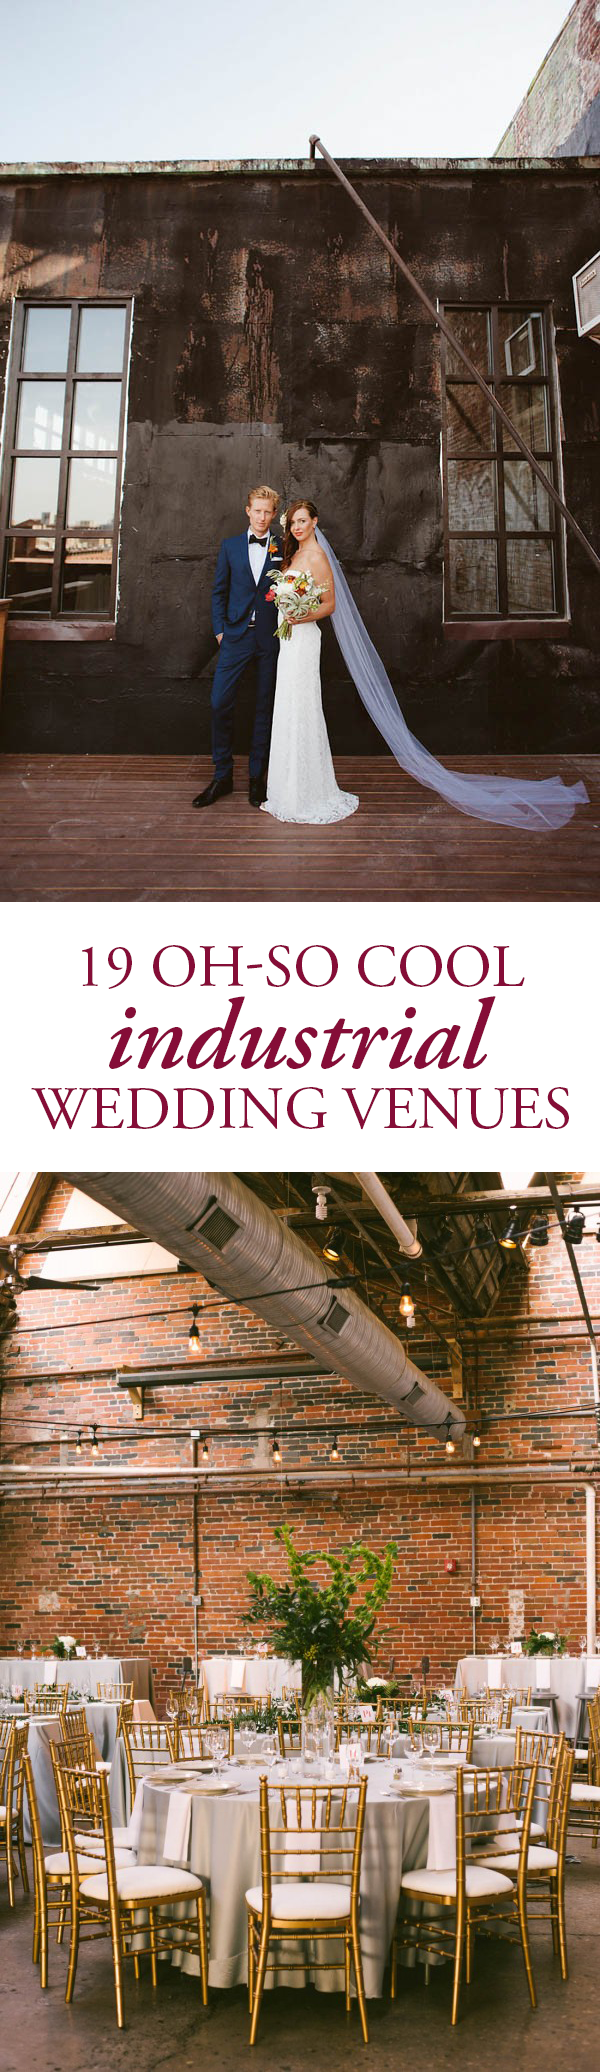 Wedding Venues Are Beloved For Their Pared Down Look Which Lends Itself To Even More Beautiful Styling Often Accompanied By Exposed Brick Walls